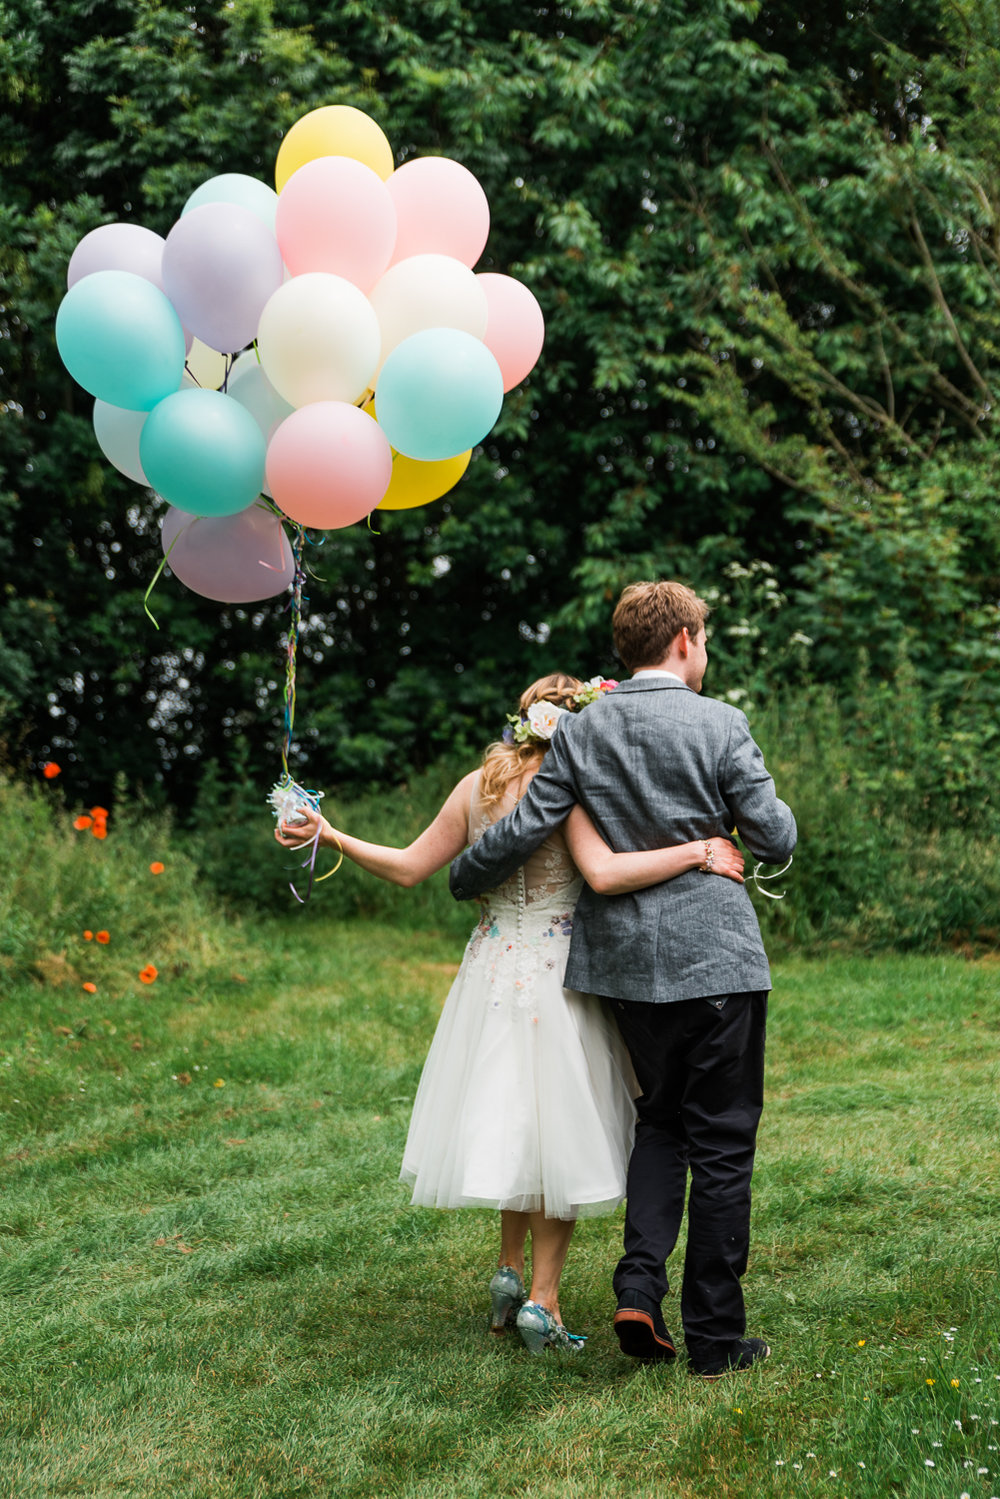 Wedding couple with colourful balloons at their festival-themed